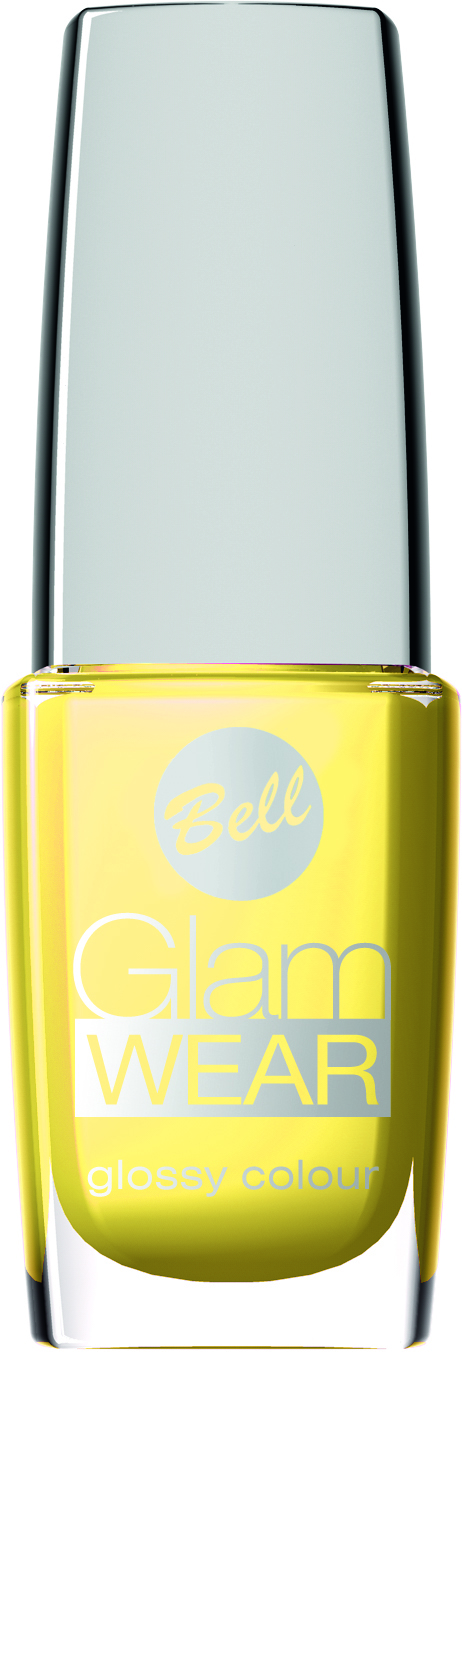 Glam Wear Glossy Colour Nail Enamel